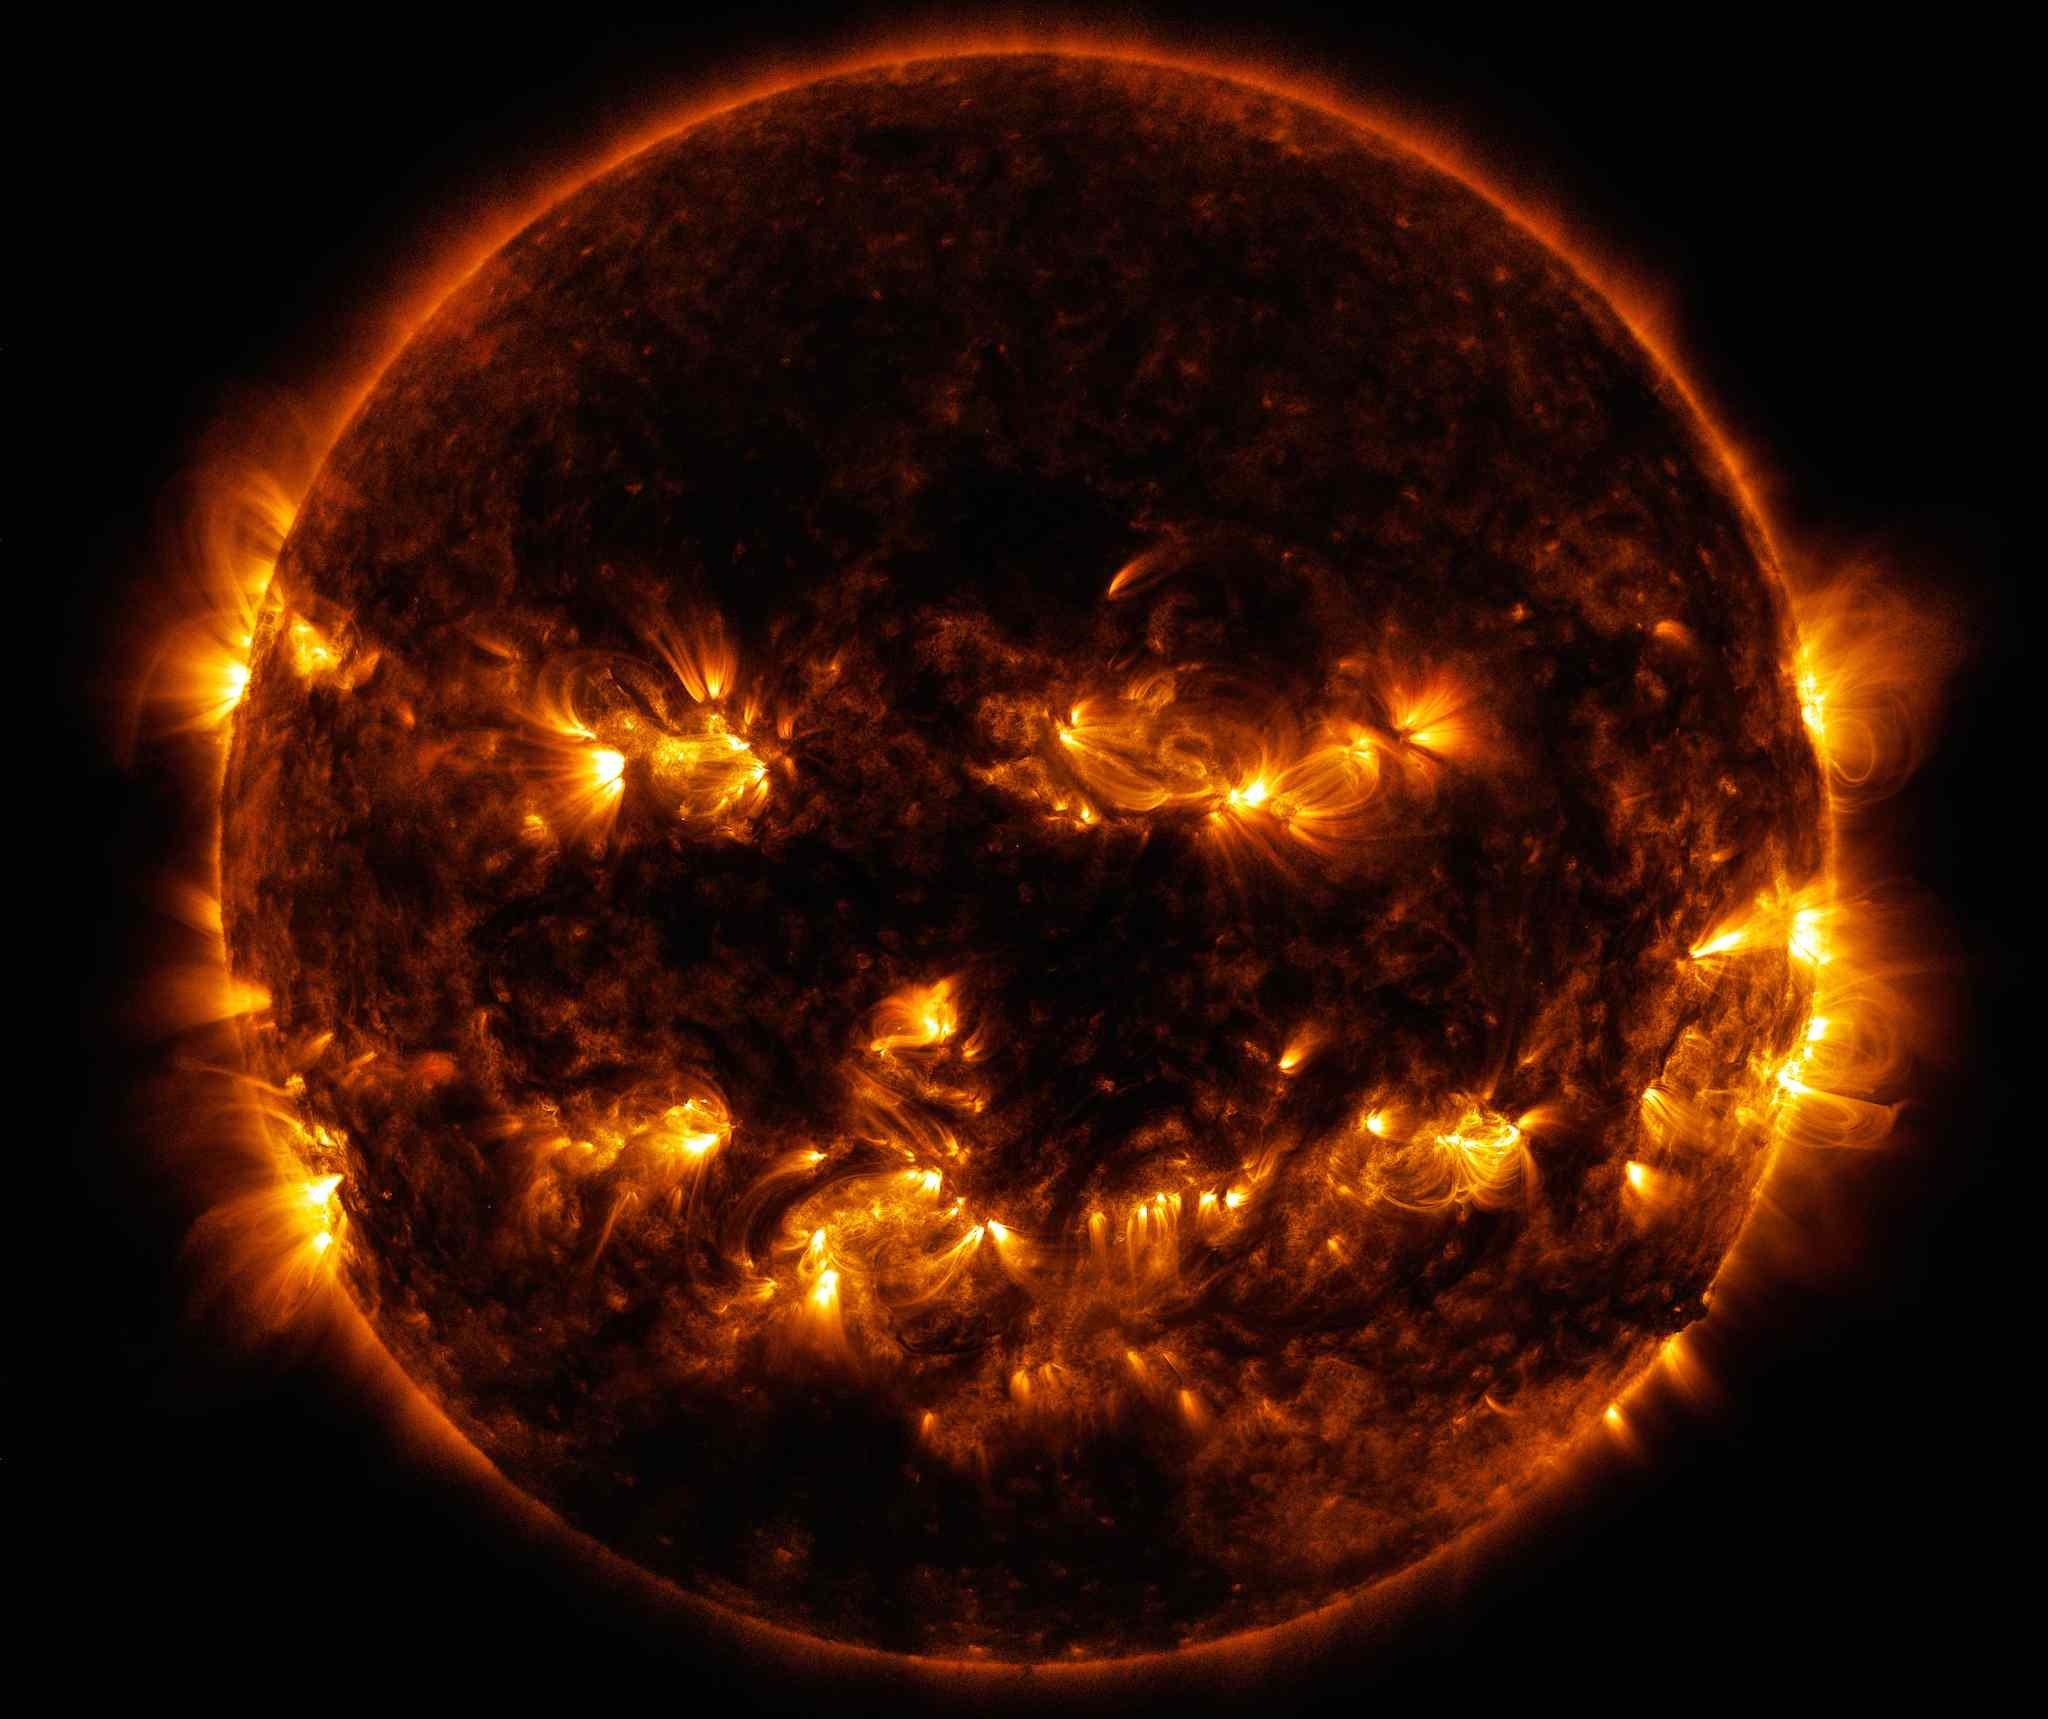 Close up photo of the sun from space with flames around the sides and center forming what resembles a smiling face